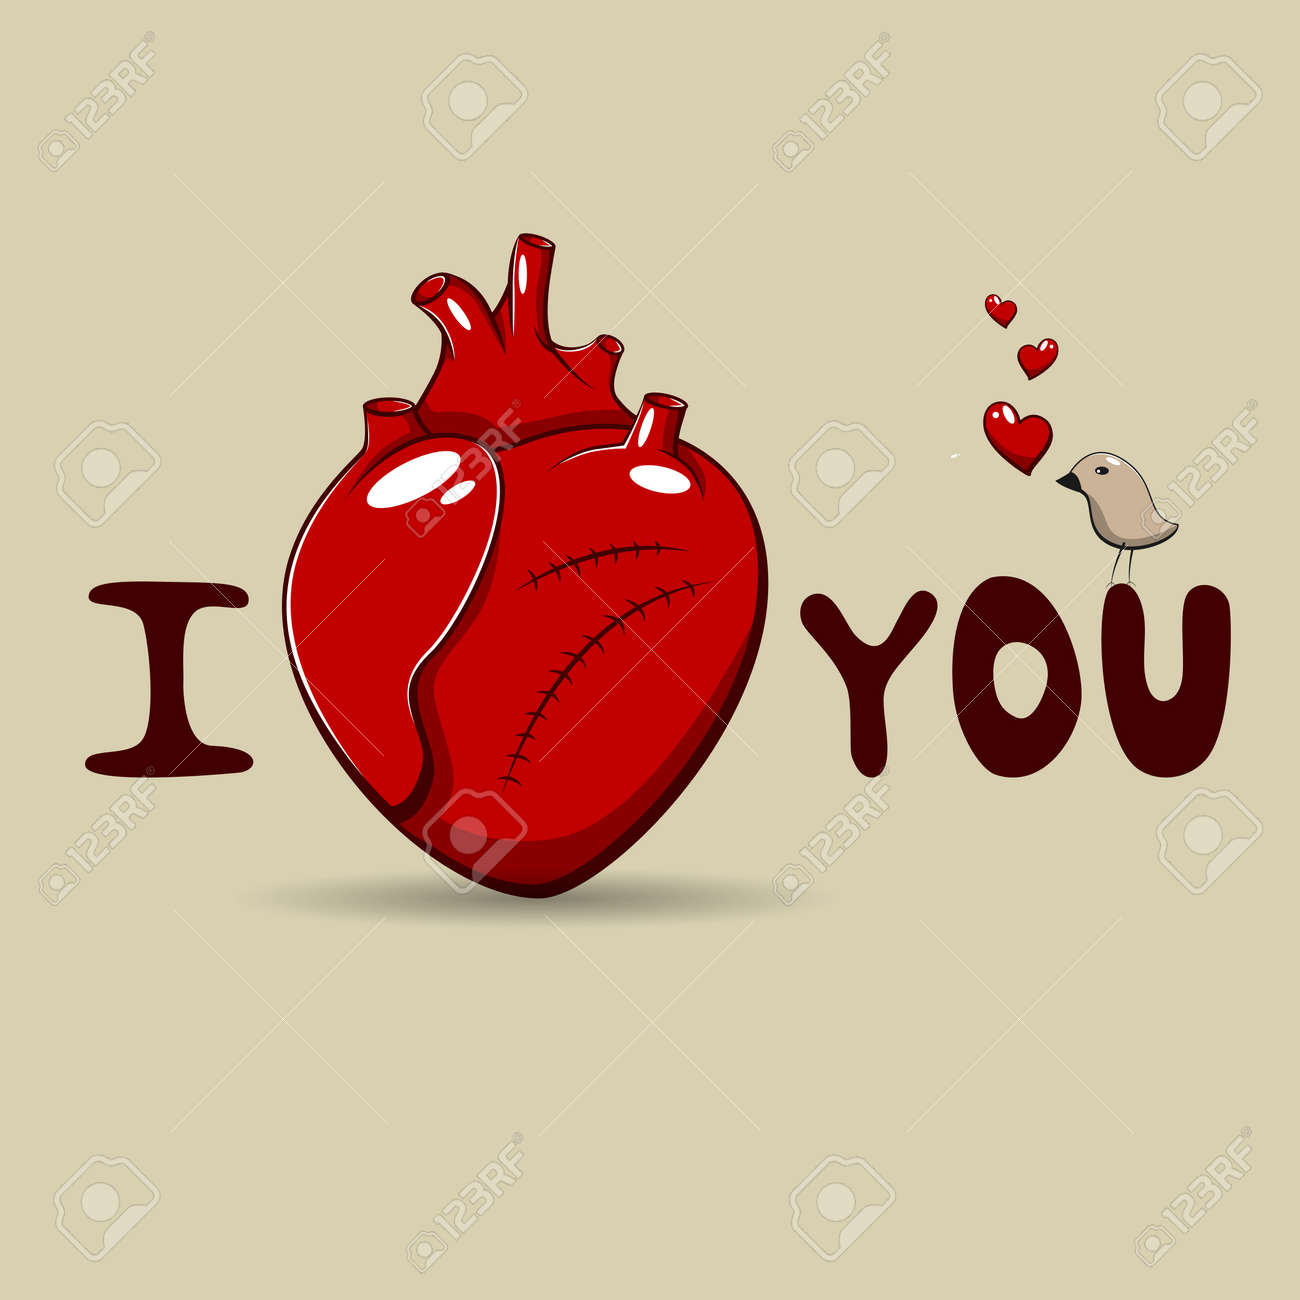 I love you Valentine's day greeting card Stock Vector - 17663571